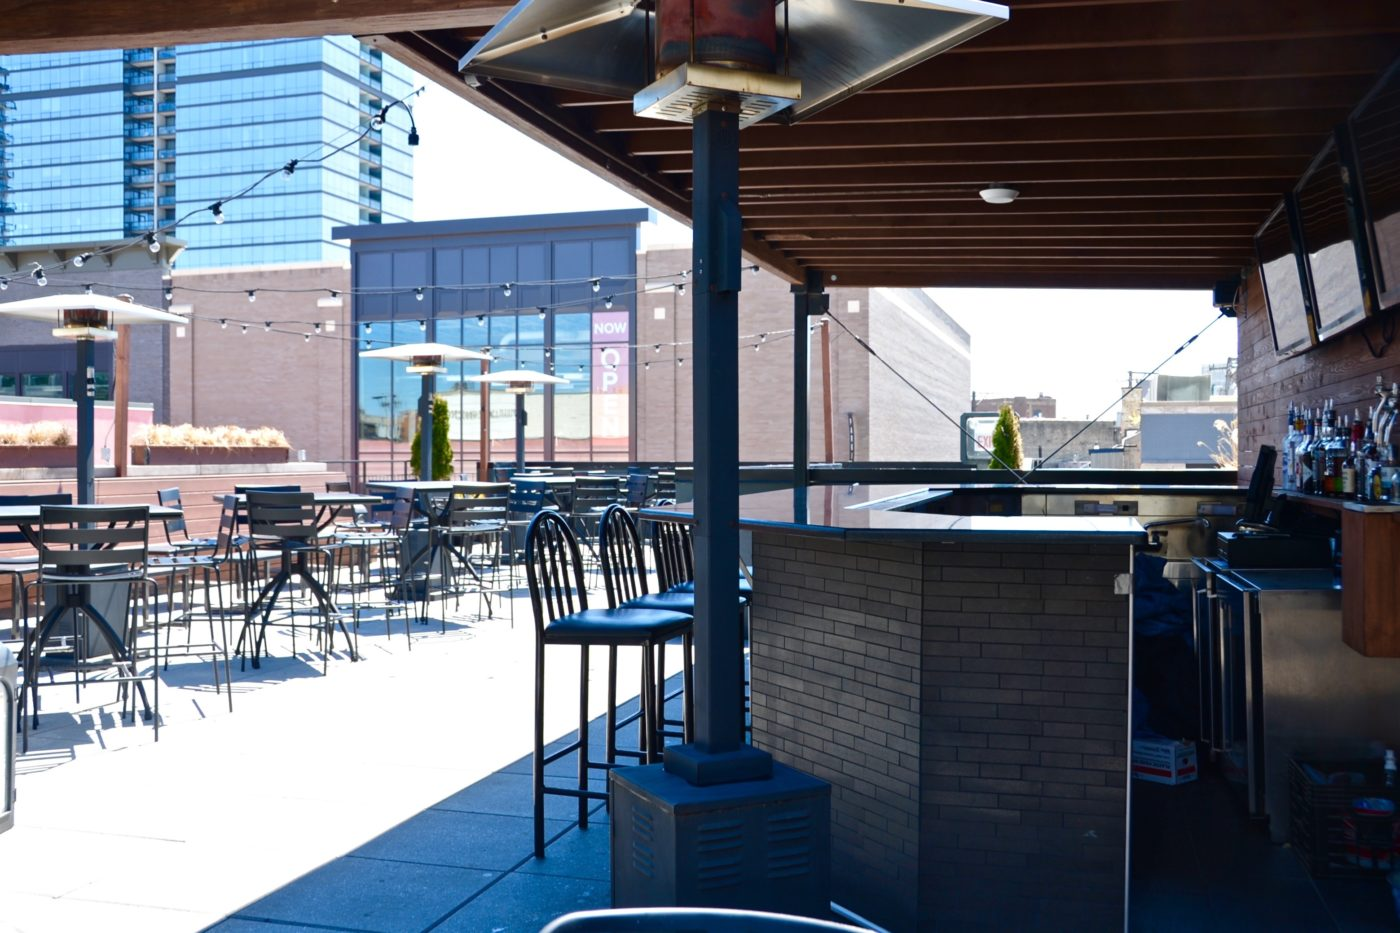 The Rooftop bar at Joe's on Weed St.